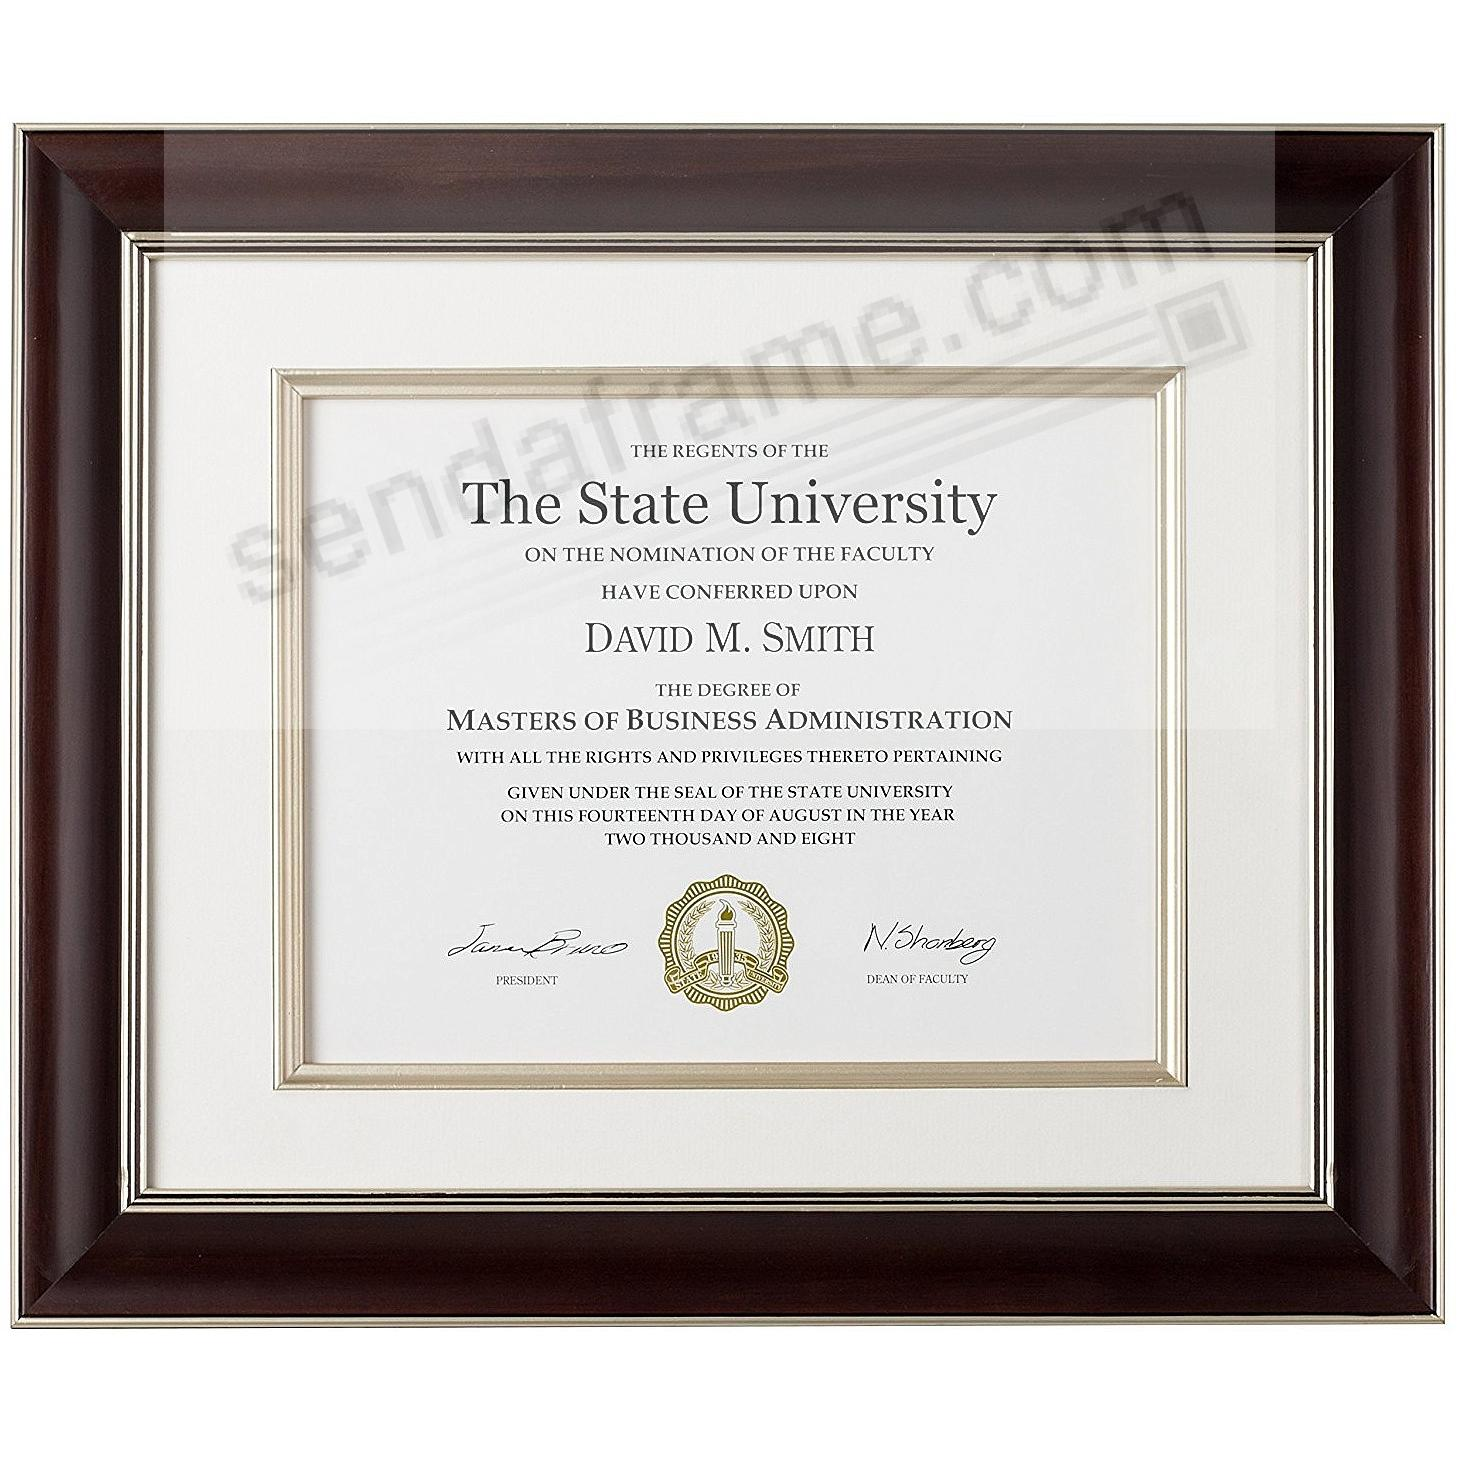 TUSCAN Walnut Wood Certificate frame Matted 15x12/11x8½ by ARTCARE®